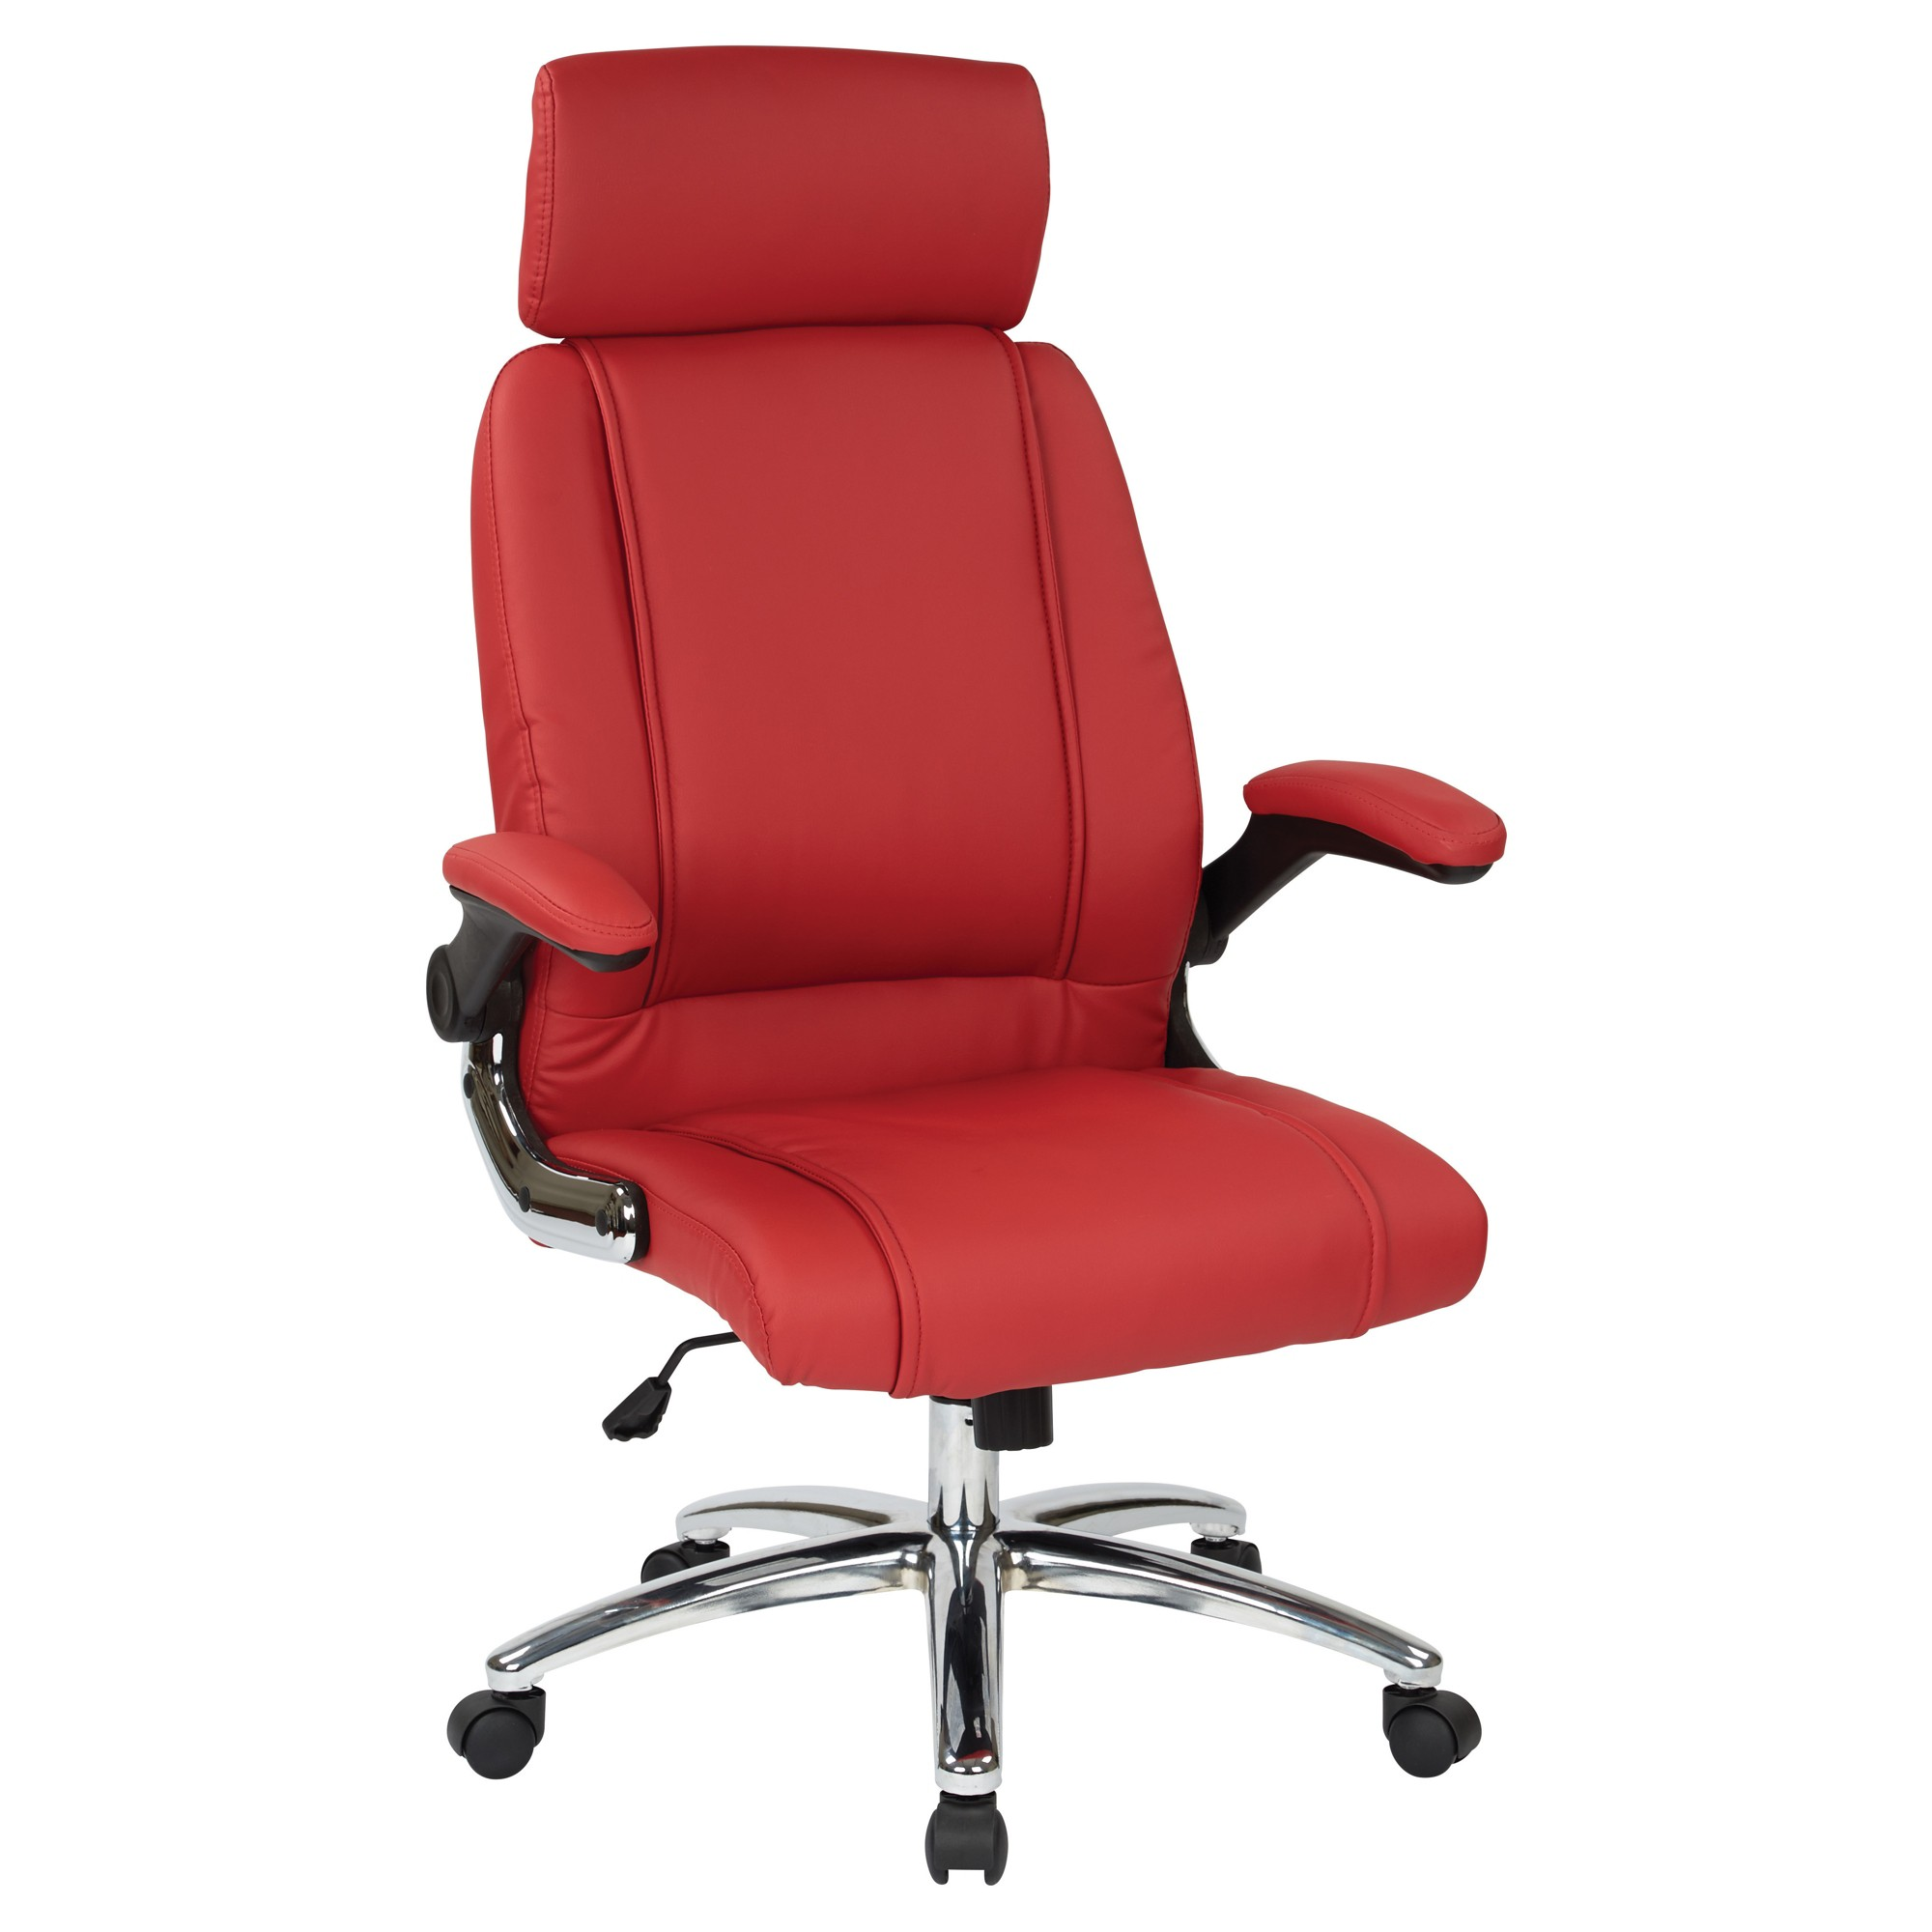 Executive Chair Red Work Smart Executive chair, Work